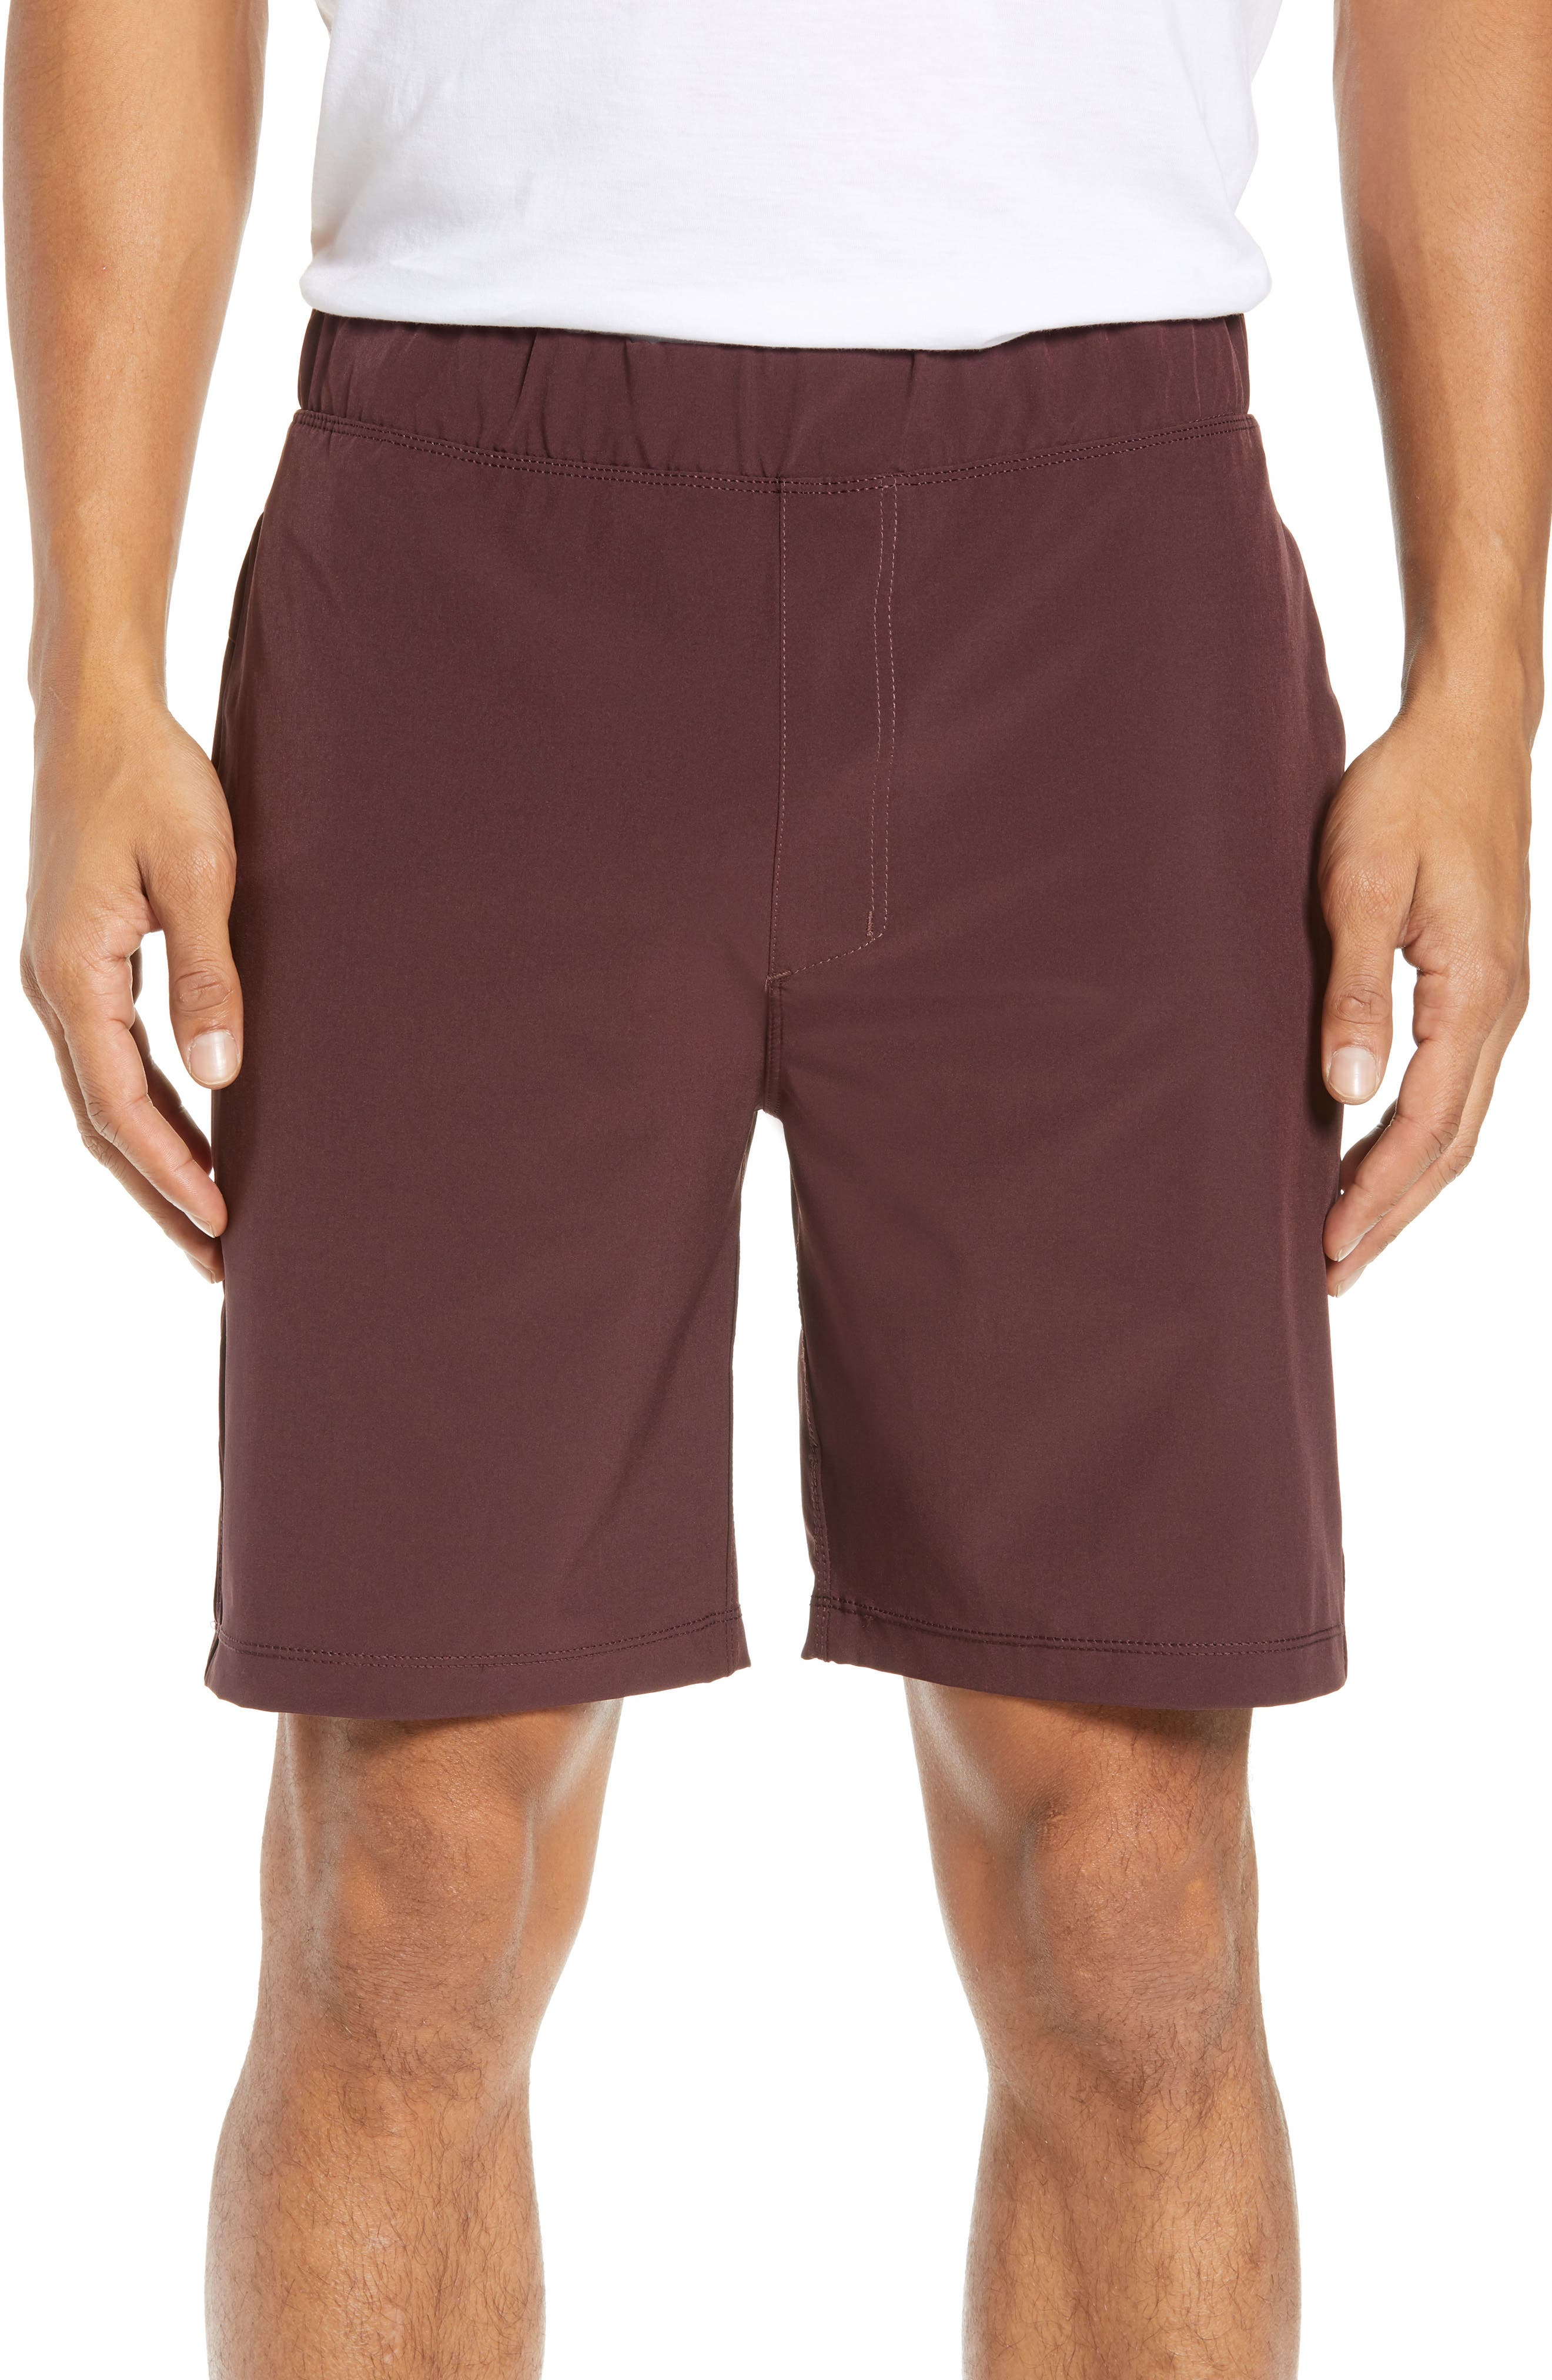 Hurley Alpha Trainer 2.0 Recycled Polyester Shorts, Burgundy